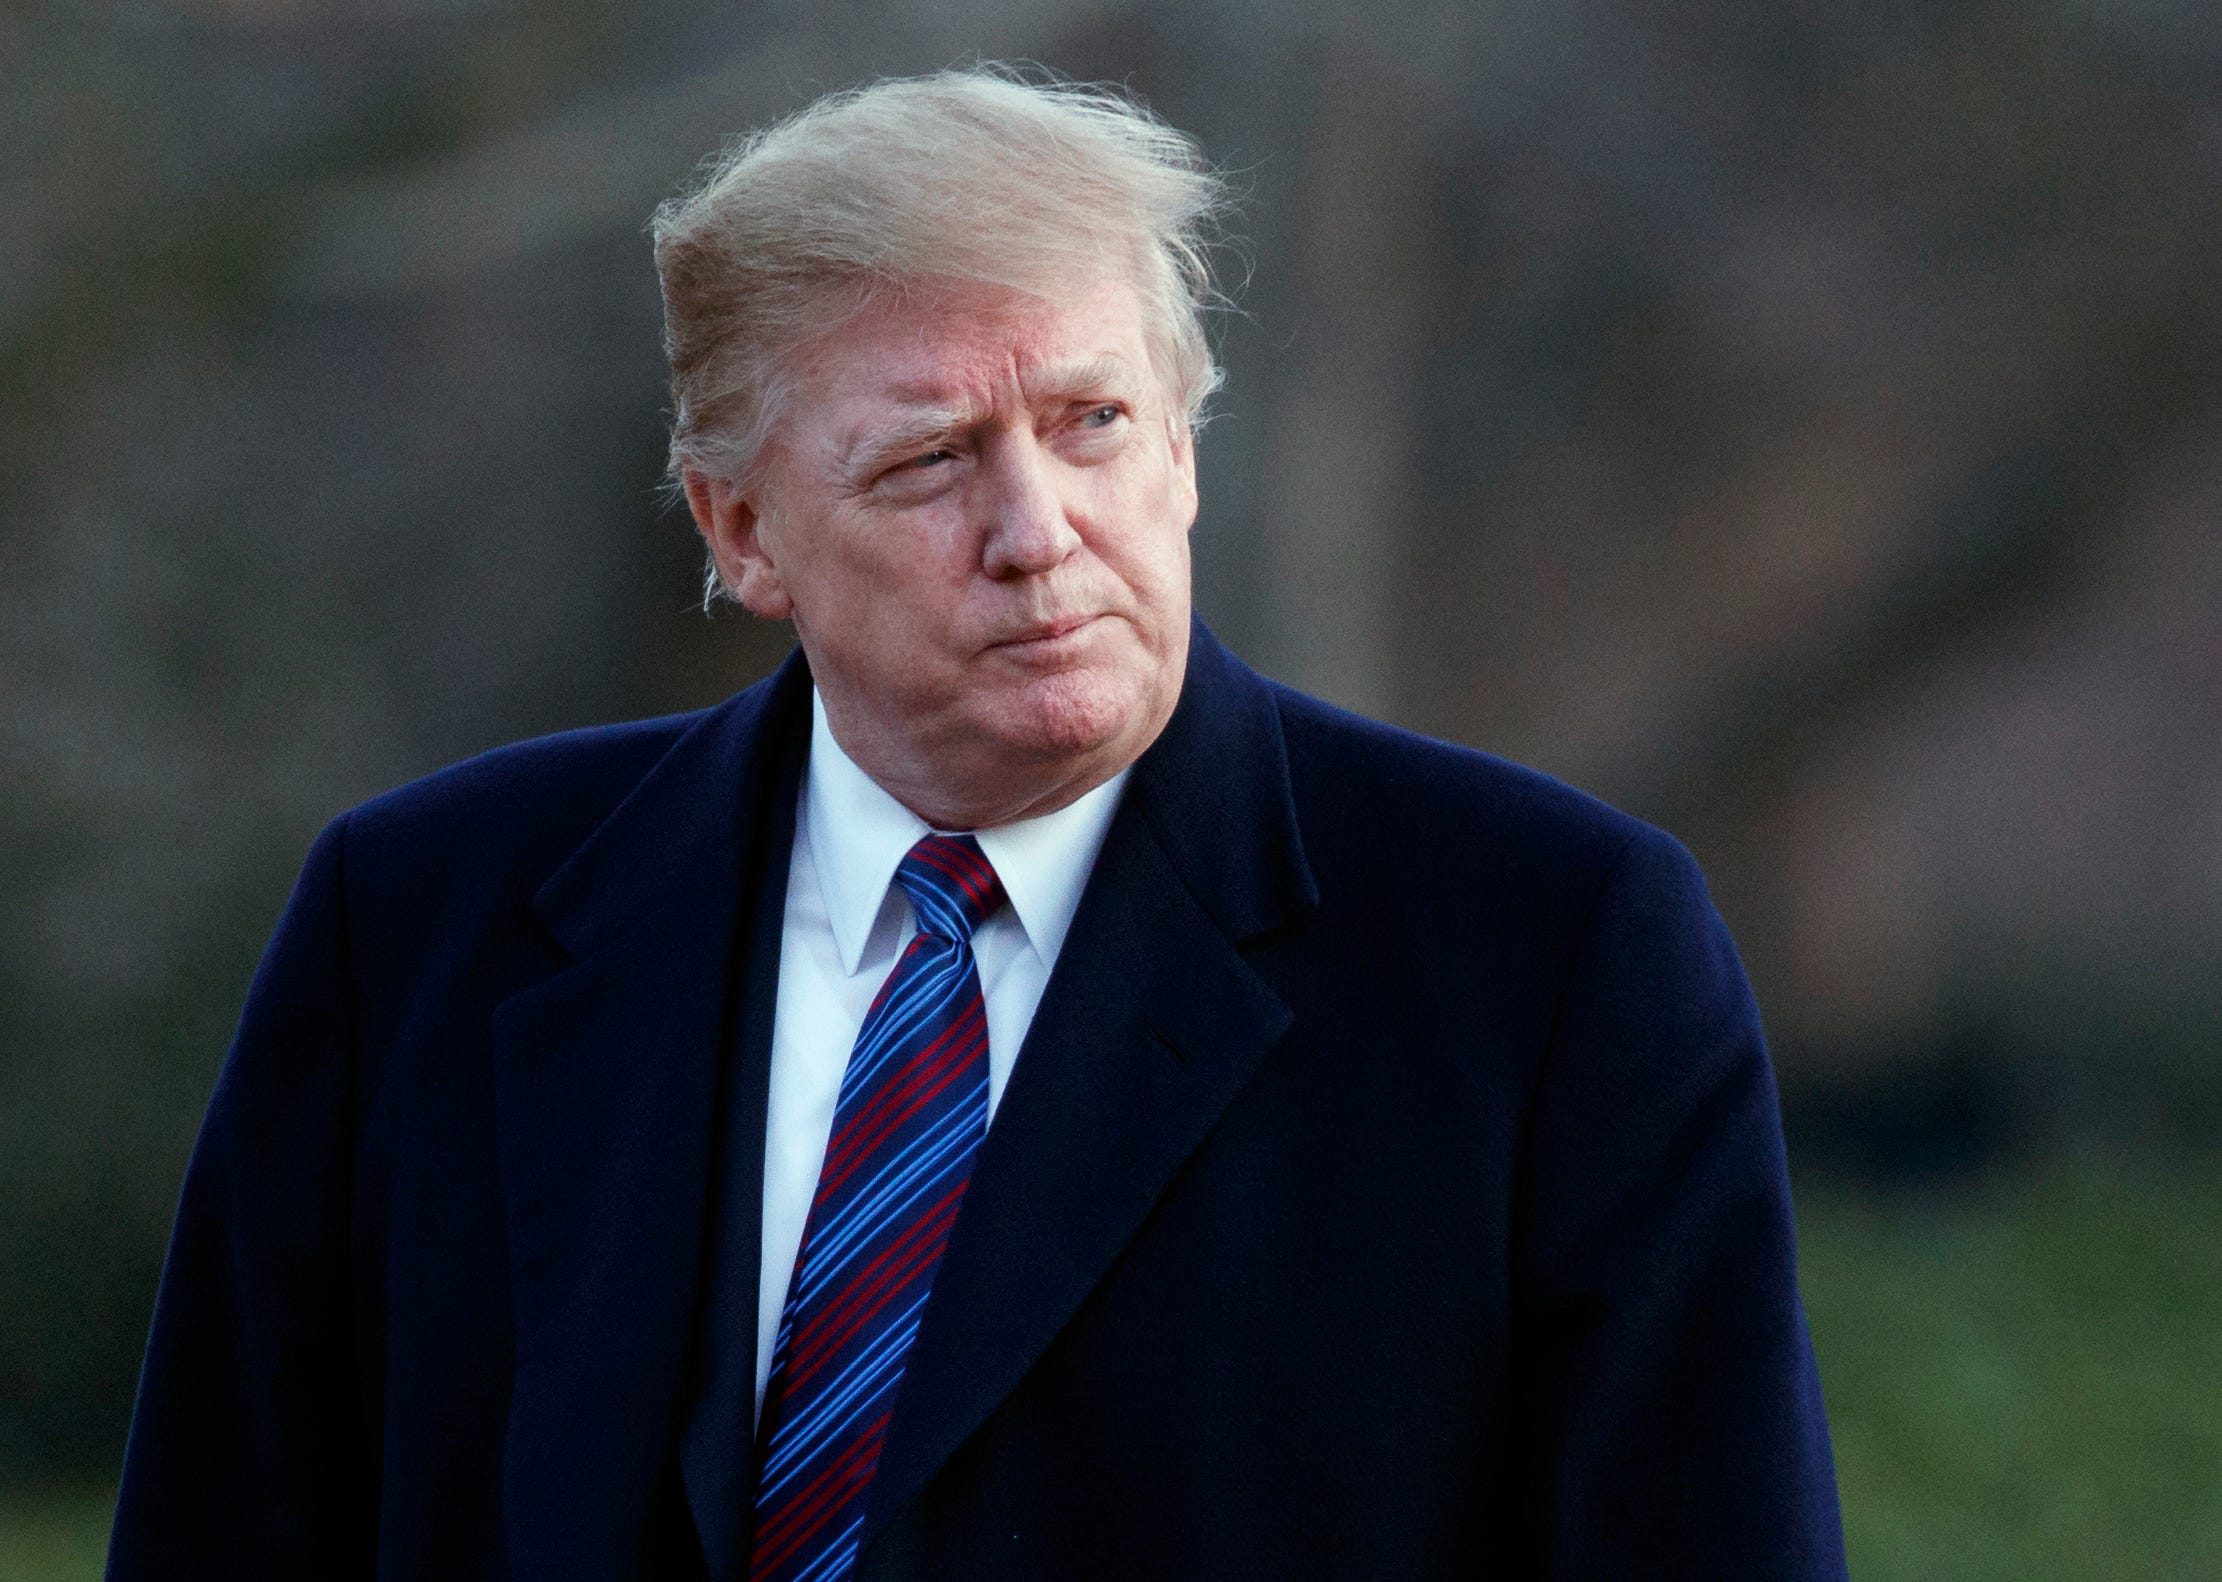 Another government shutdown? Trump says that's 'up to the Democrats'